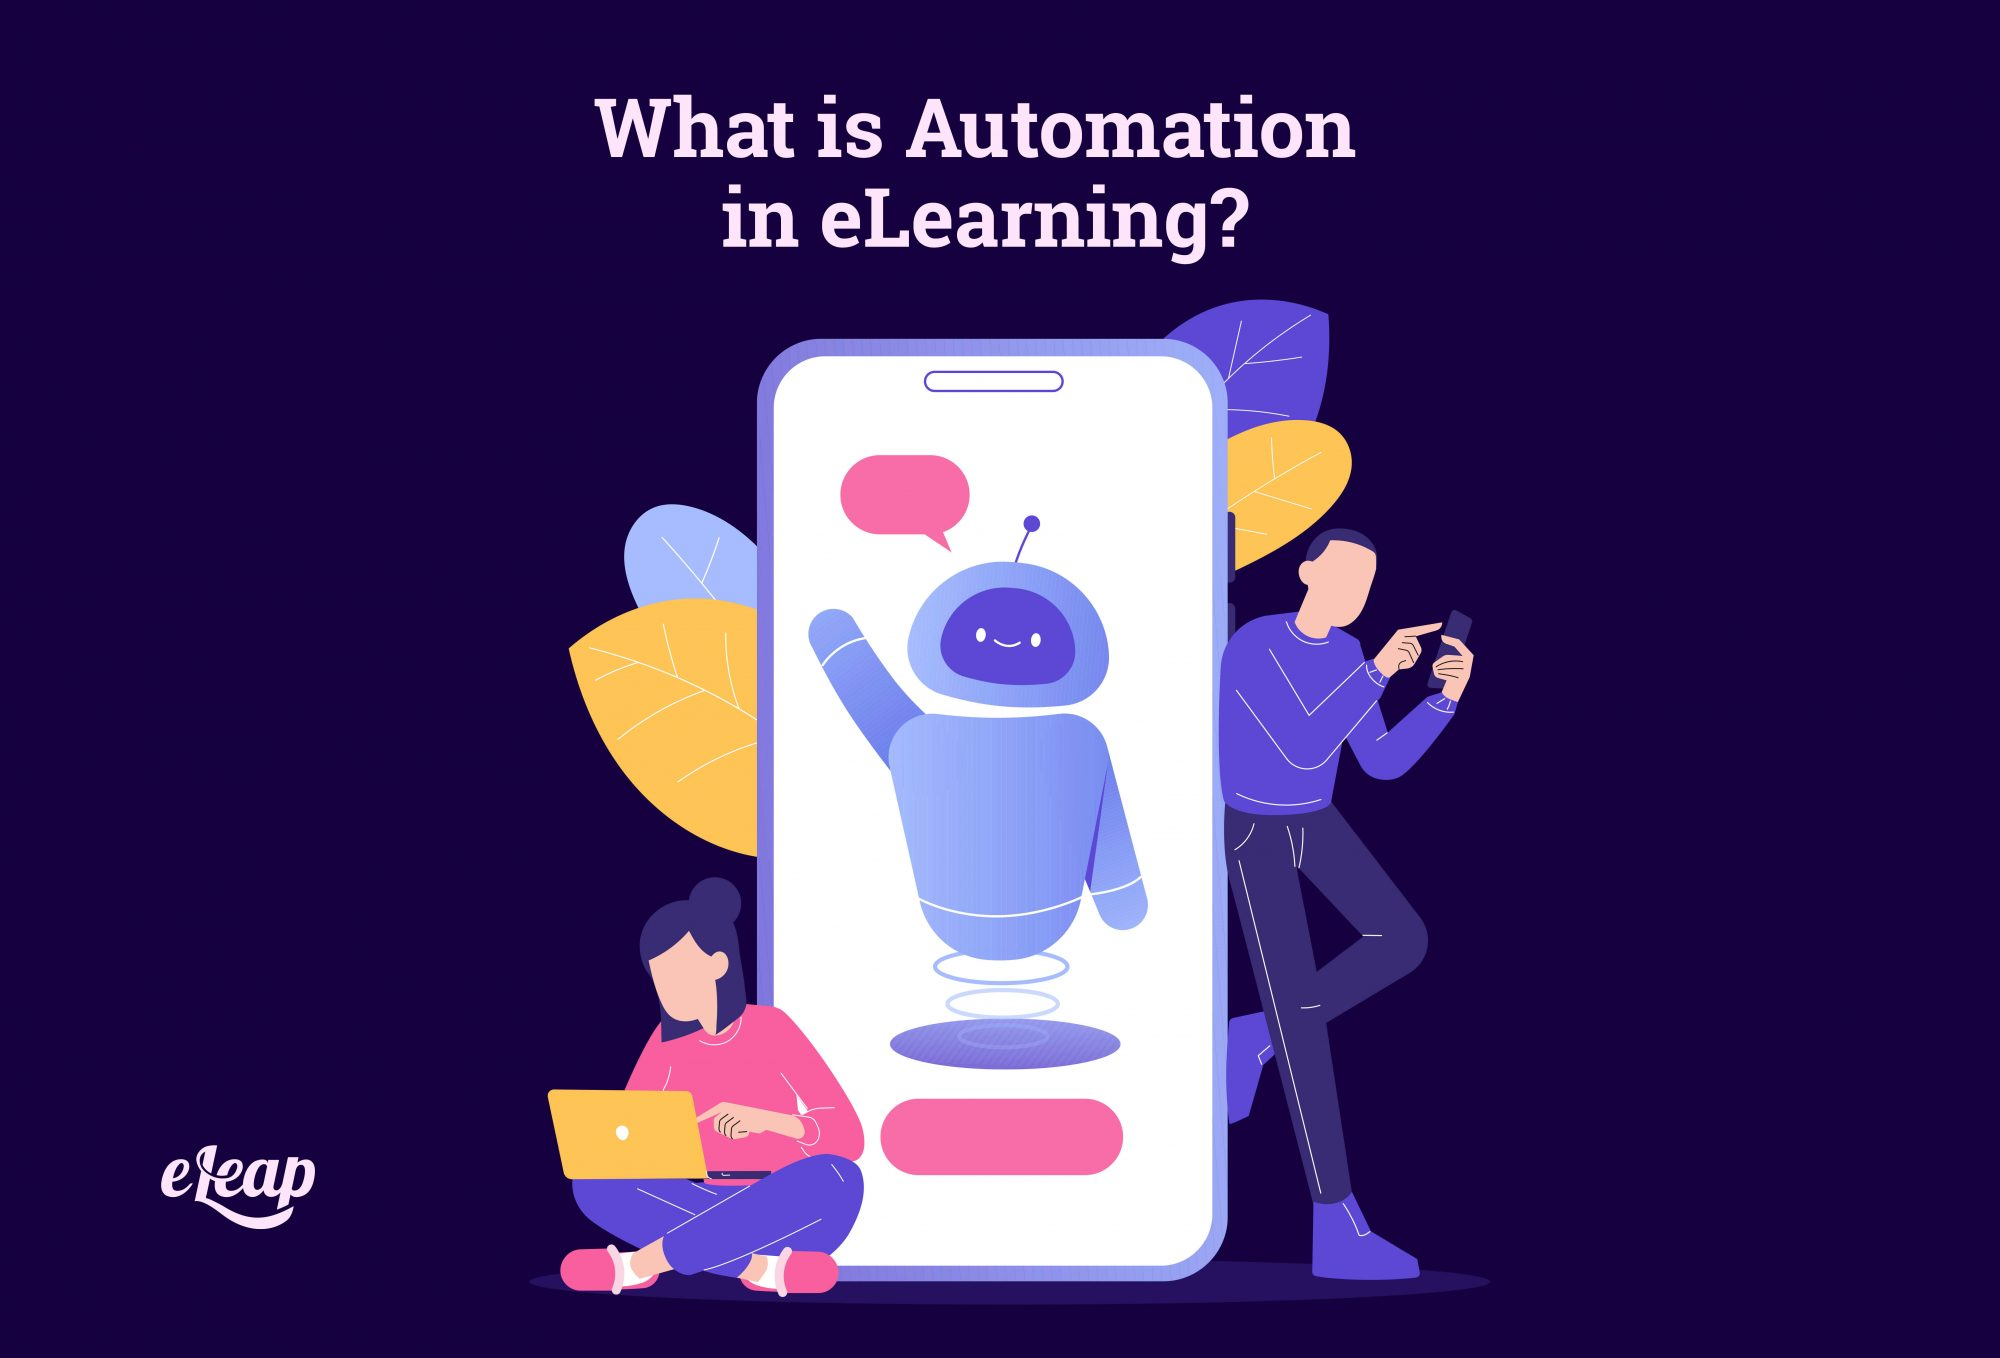 What is Automation in eLearning?